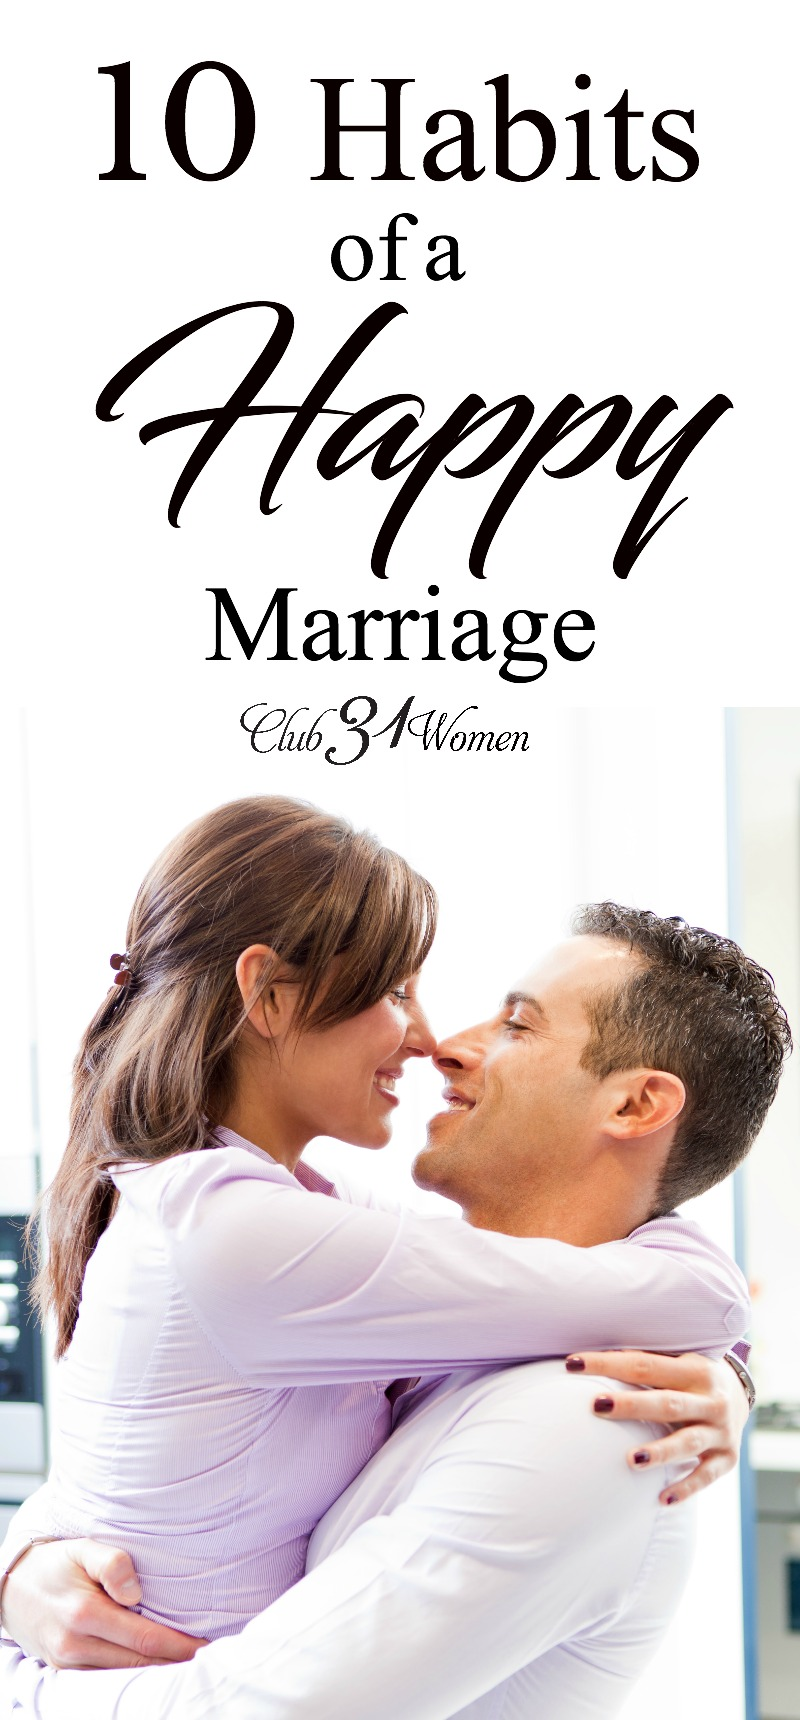 What does it take to have a life-long marriage? A truly happy one? Here are the 10 habits that go into a lasting, loving marriage. via @Club31Women